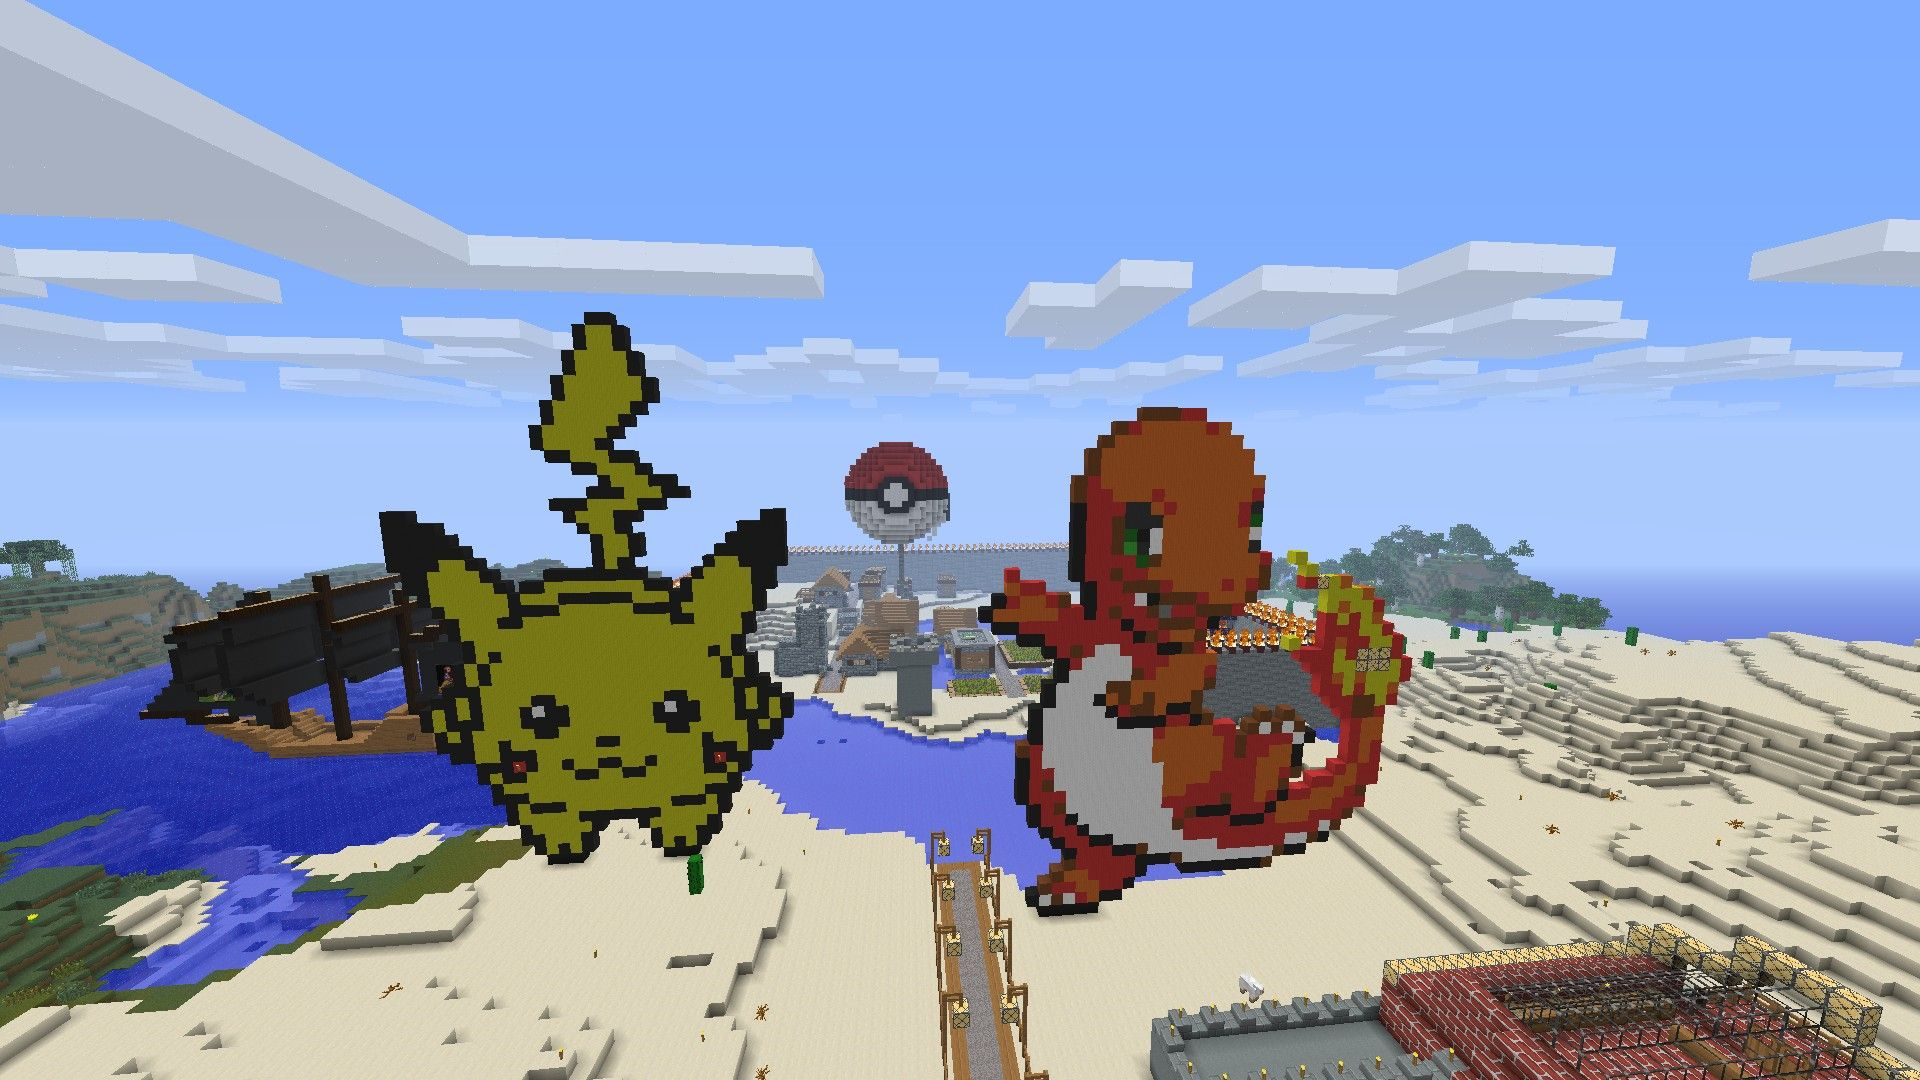 Download Wallpaper Minecraft Pokemon - 1707308d85e2b8ccb9ed68f8fead692d  HD_97214.jpg